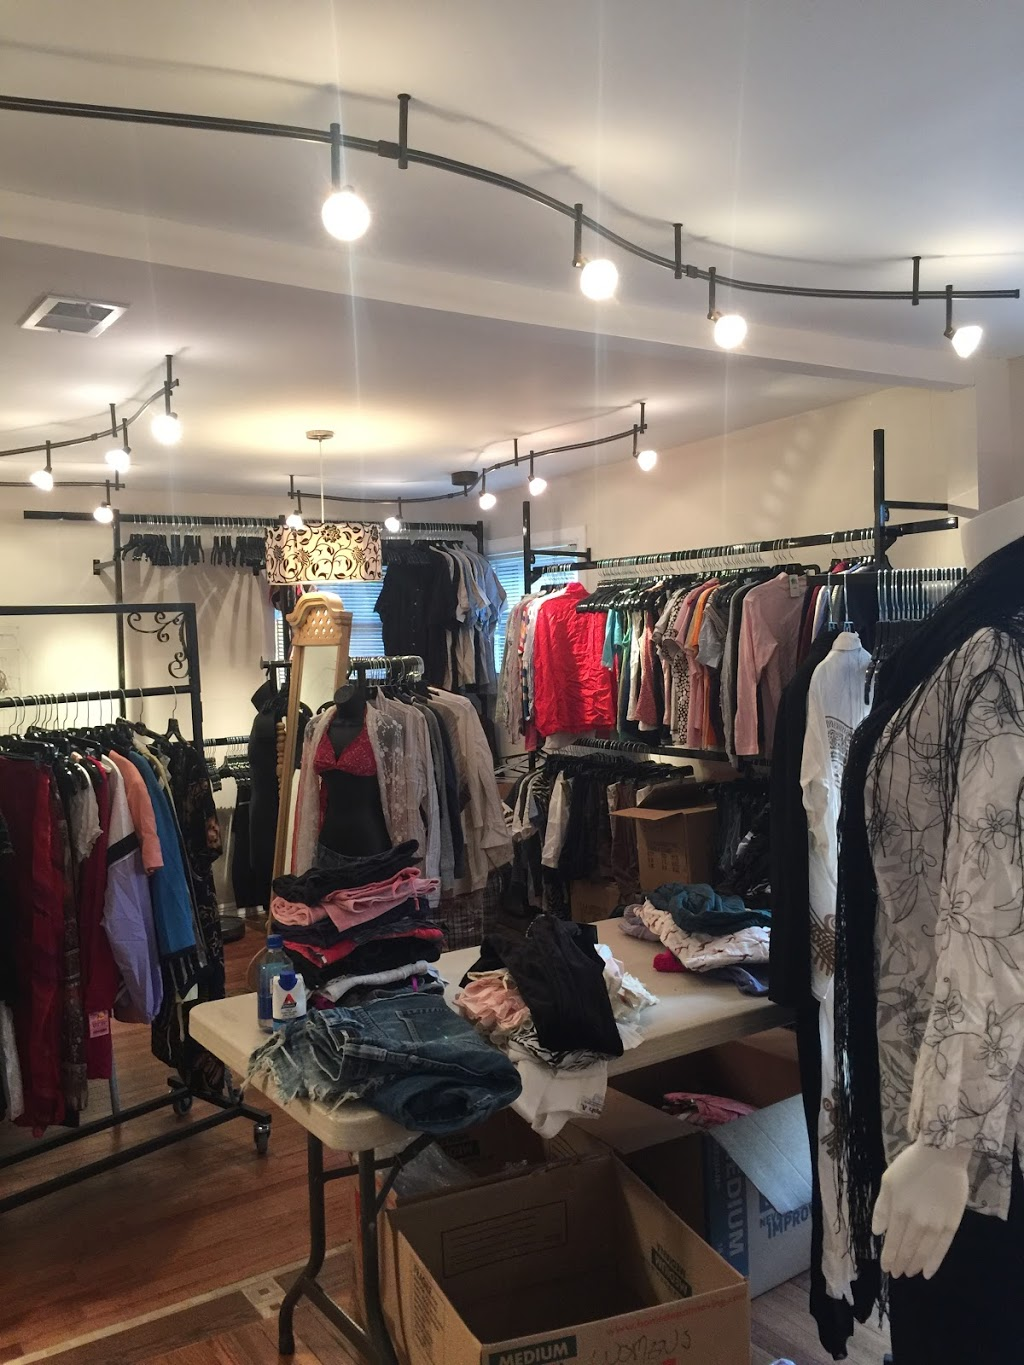 Red Rose Consignment & Boutique - store  | Photo 3 of 10 | Address: 77 Cassville Rd, Jackson Township, NJ 08527, USA | Phone: (732) 961-7320